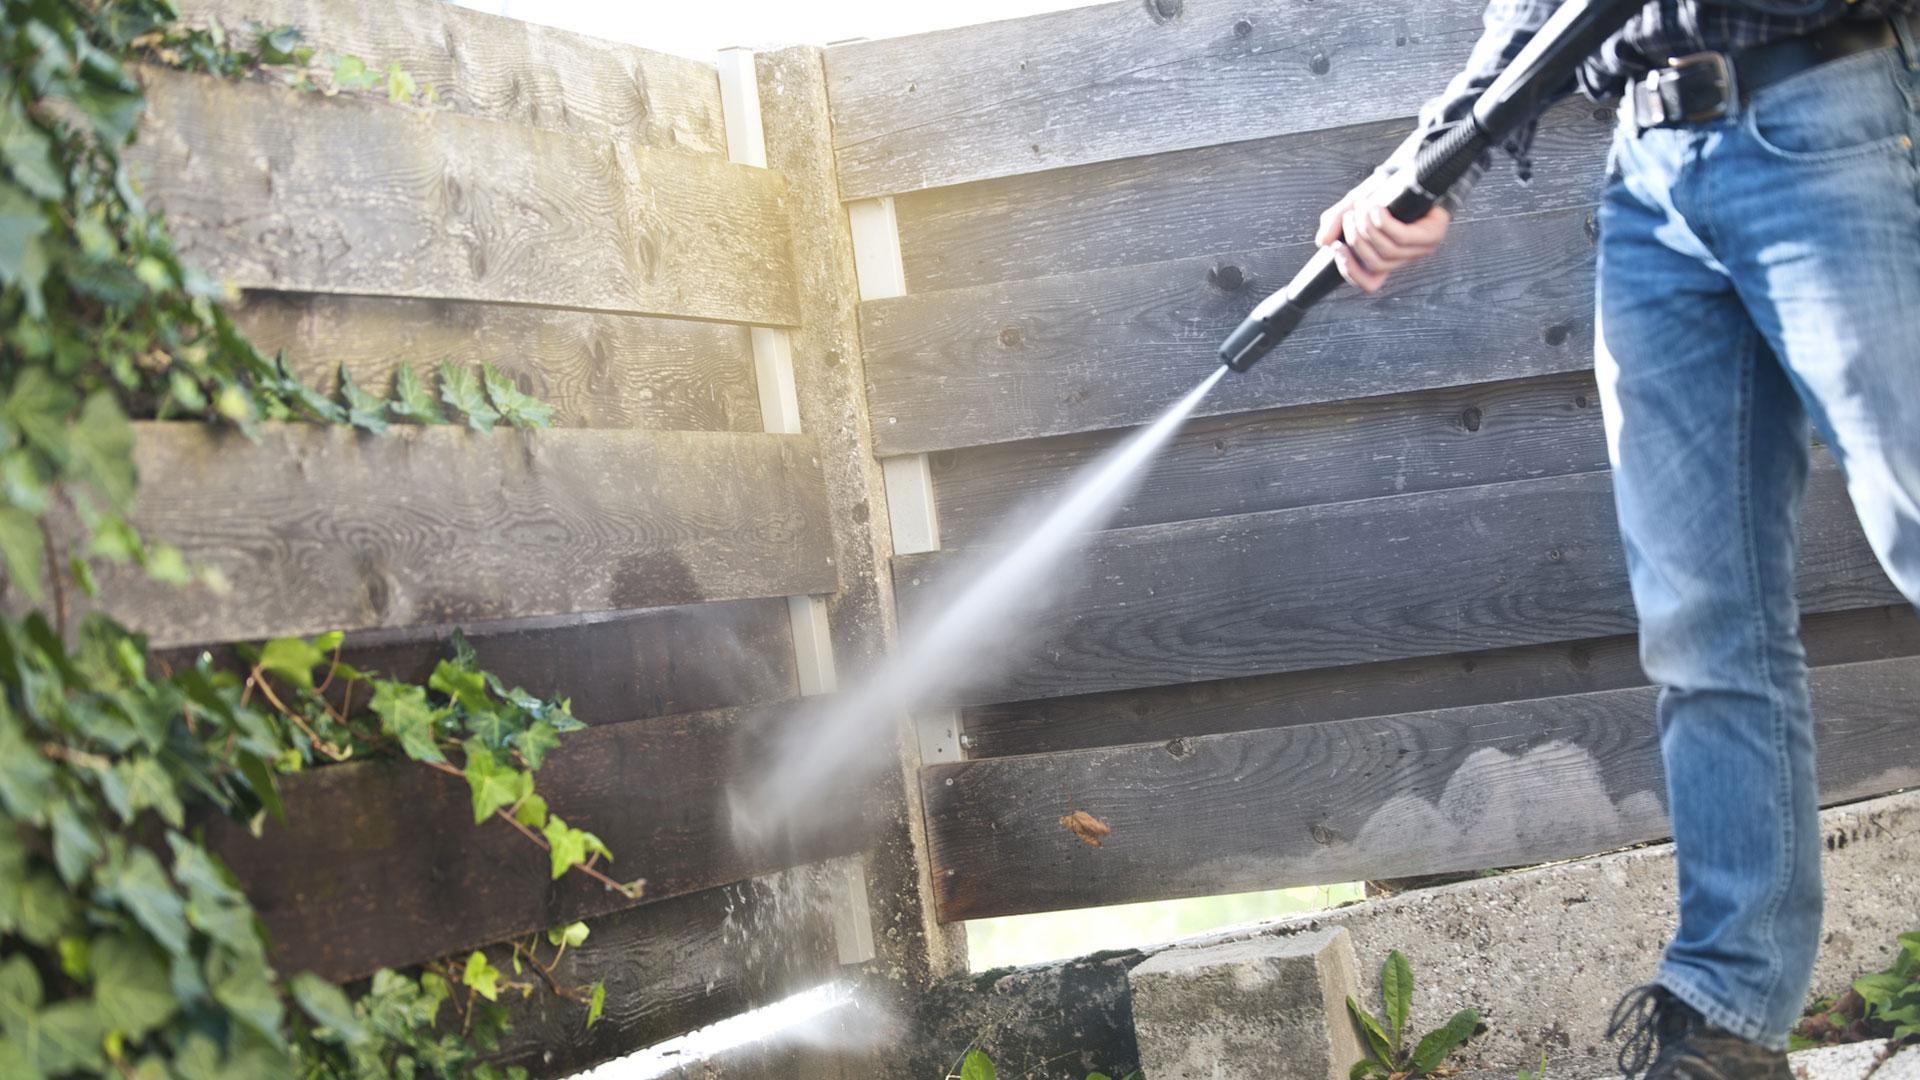 Best Pressure Washer Buying Guide - Consumer Reports